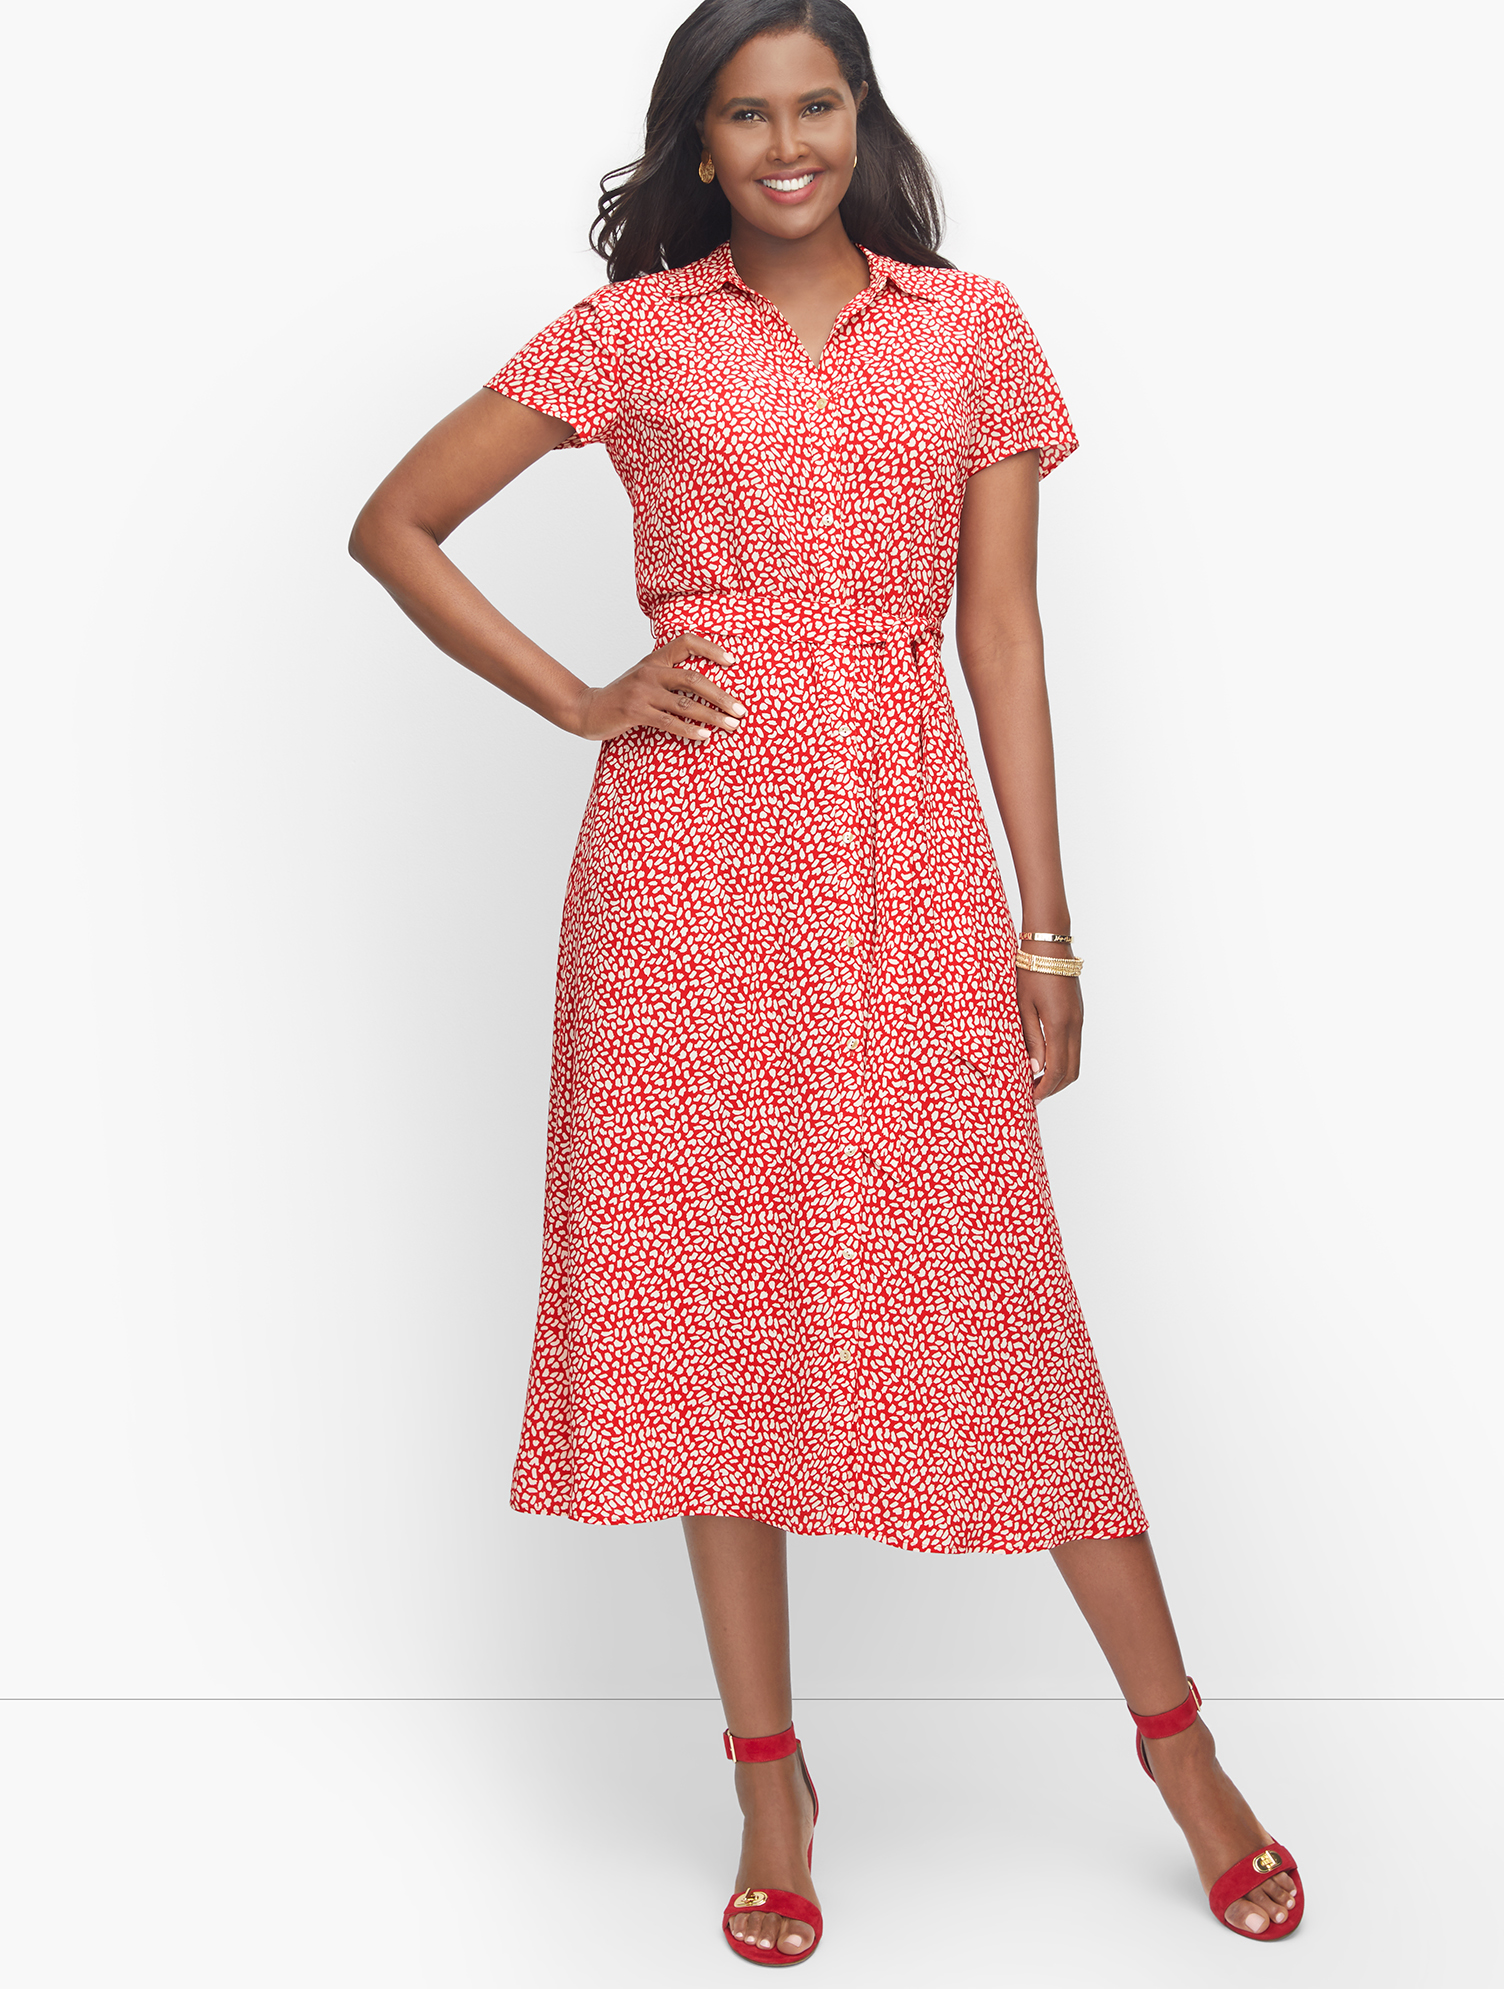 1930s Style Clothing and Fashion Leopard Tie-Waist Midi Dress - RedWhite - 24 Talbots $119.99 AT vintagedancer.com